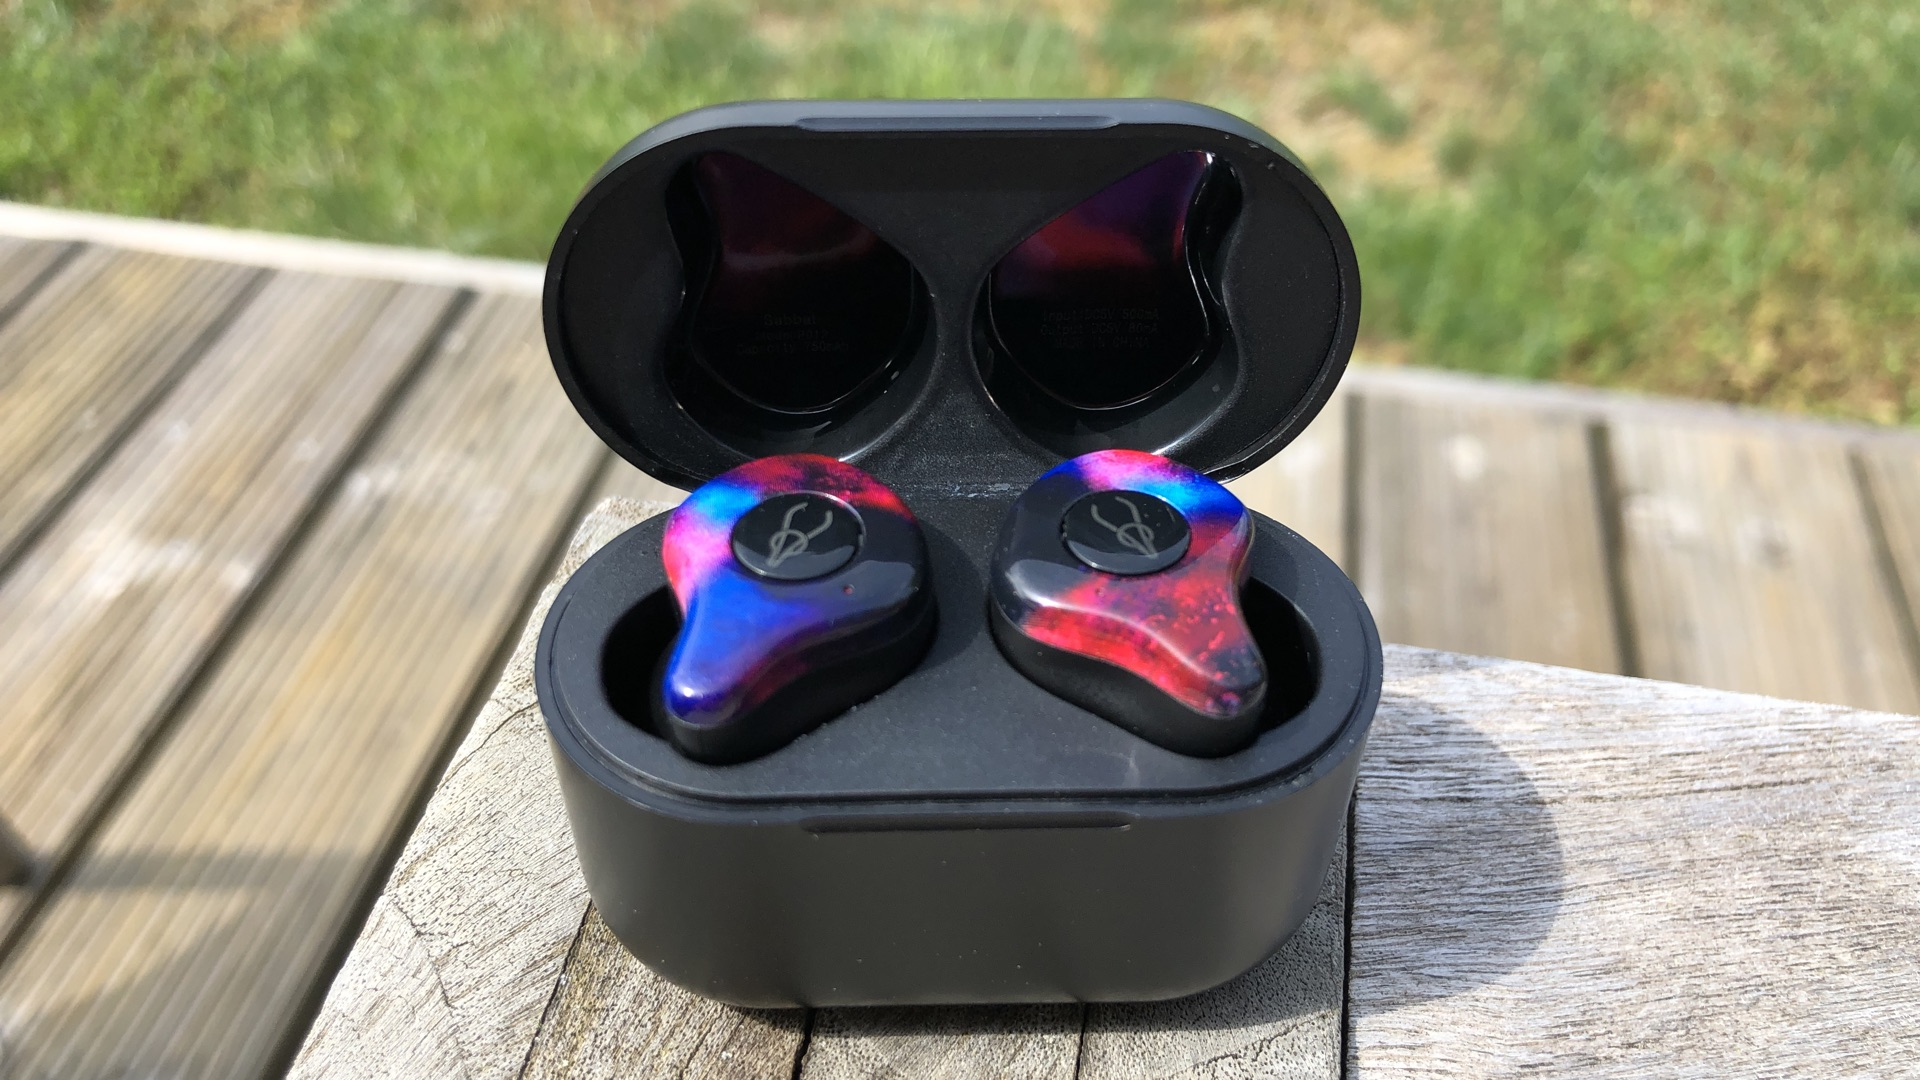 These lookers deliver air, not too much bass